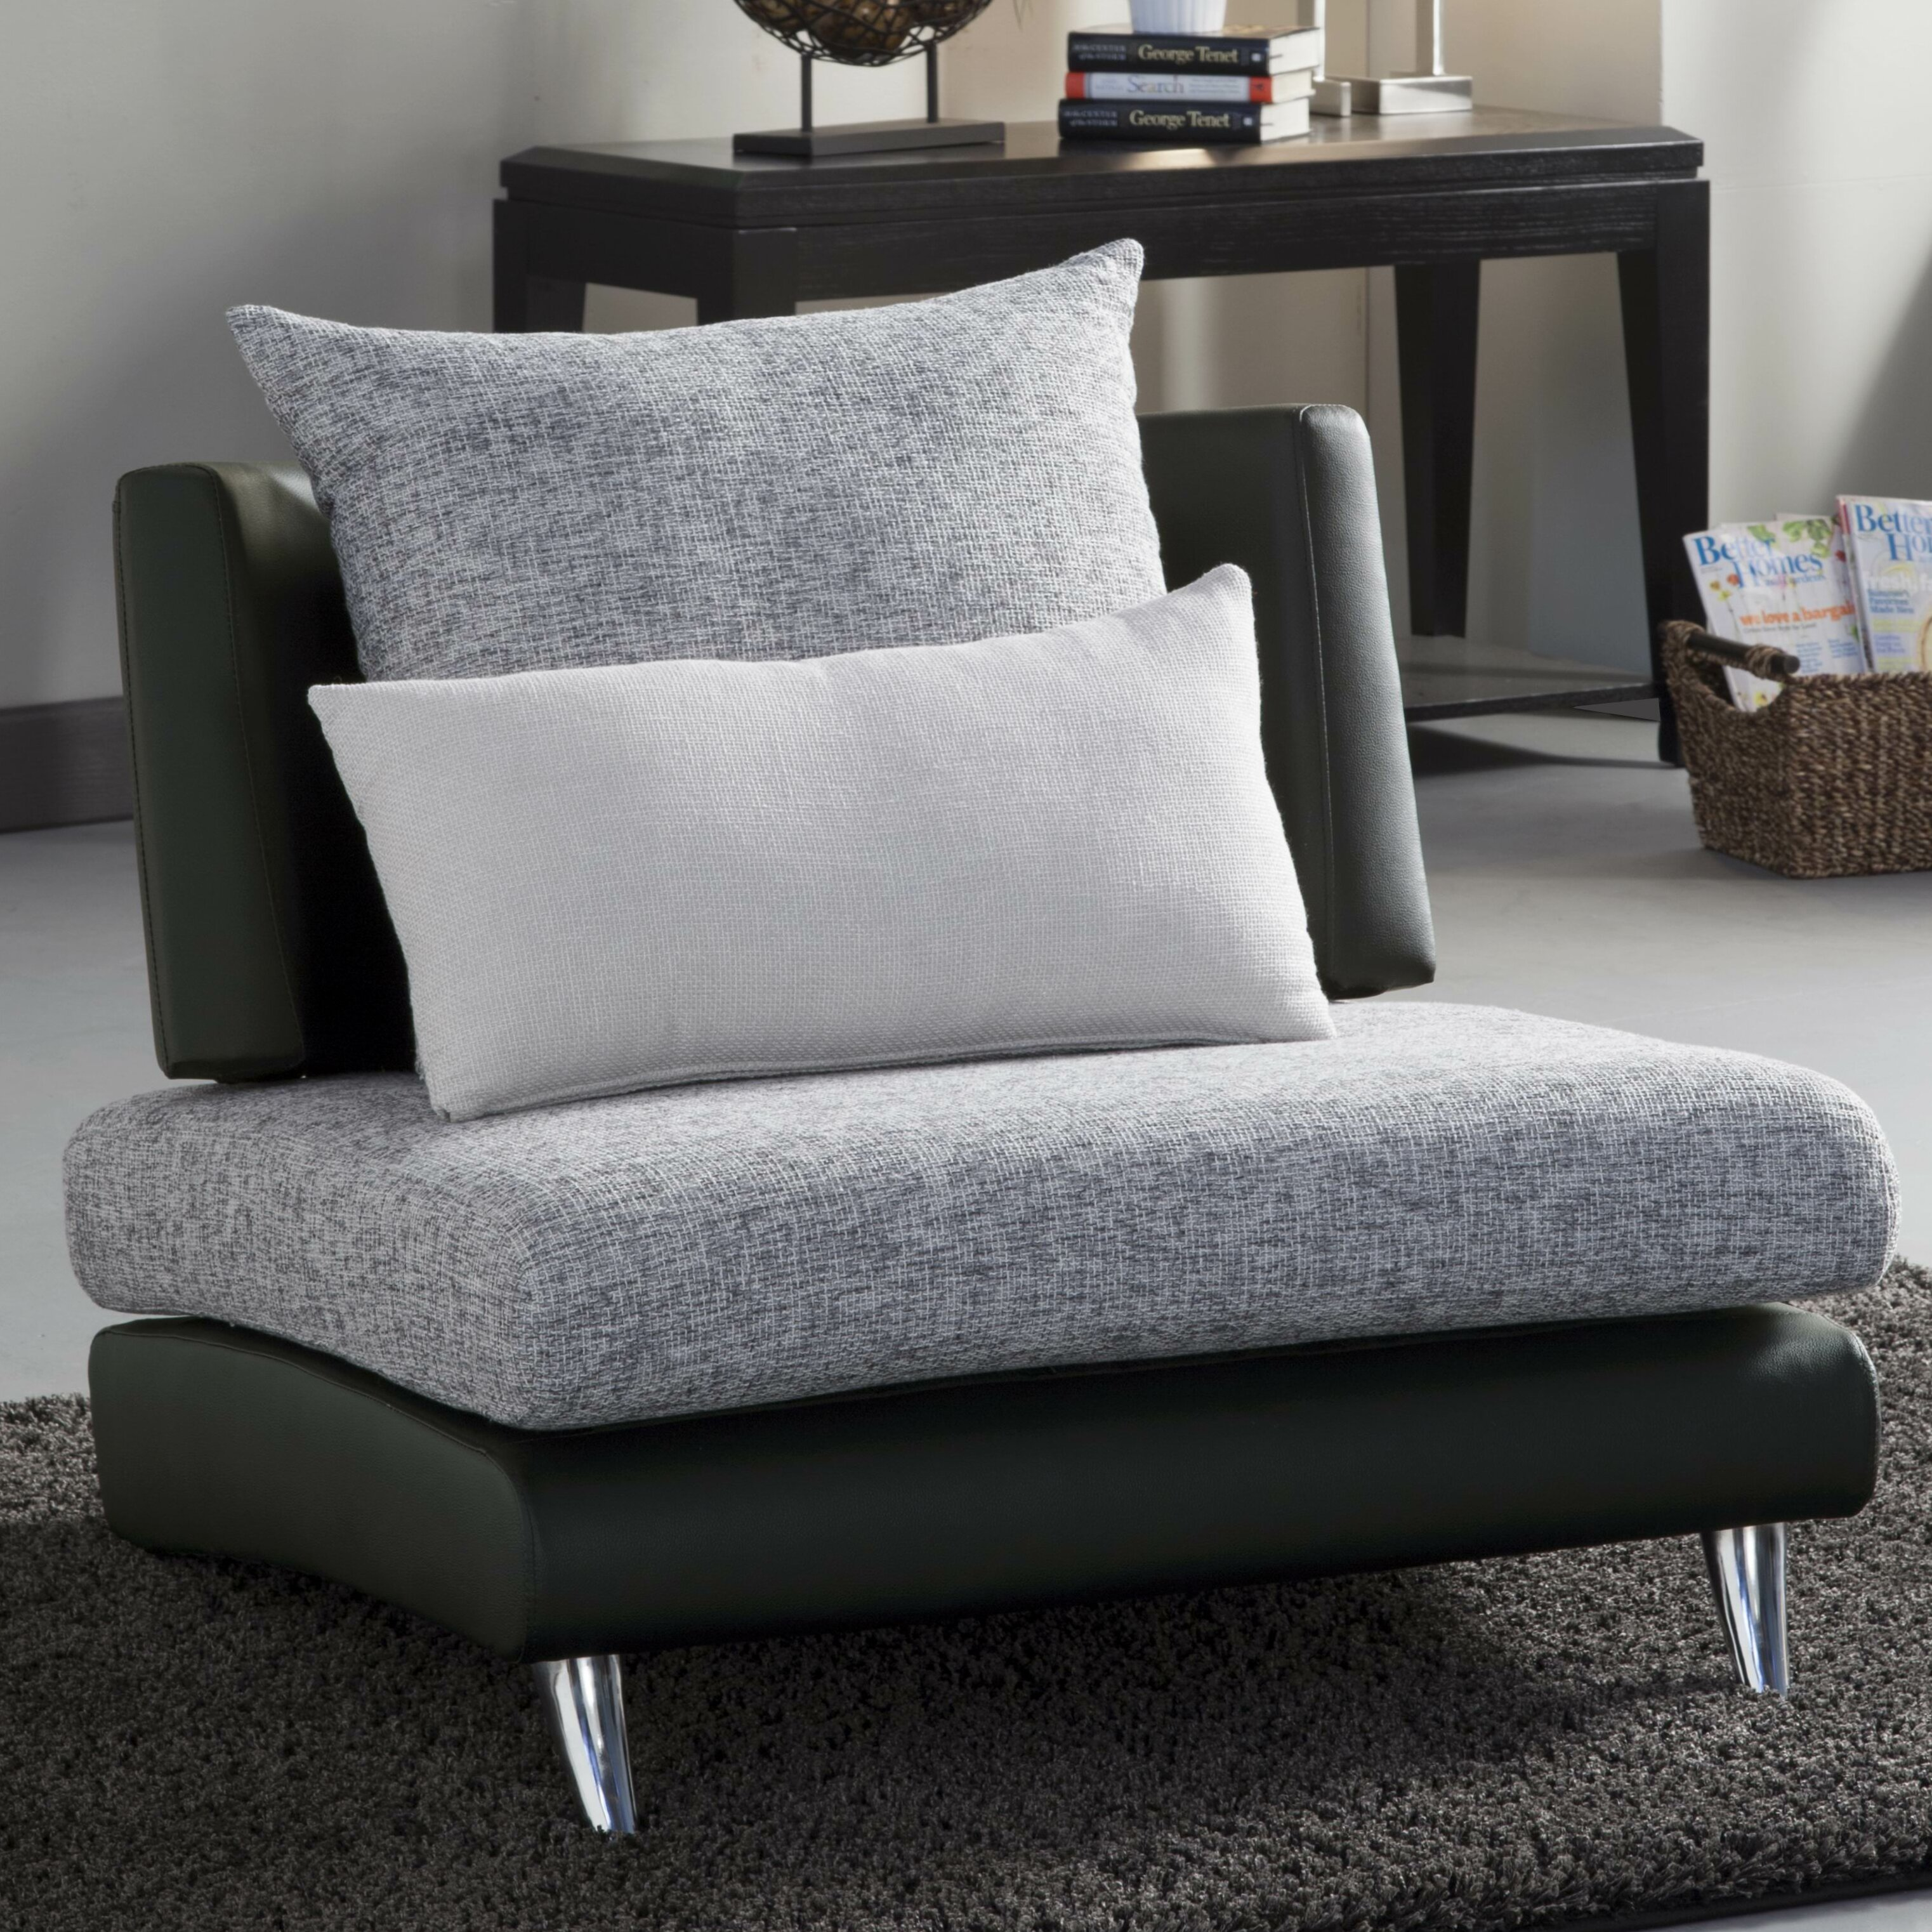 woodhaven hill renton living room collection reviews. Black Bedroom Furniture Sets. Home Design Ideas